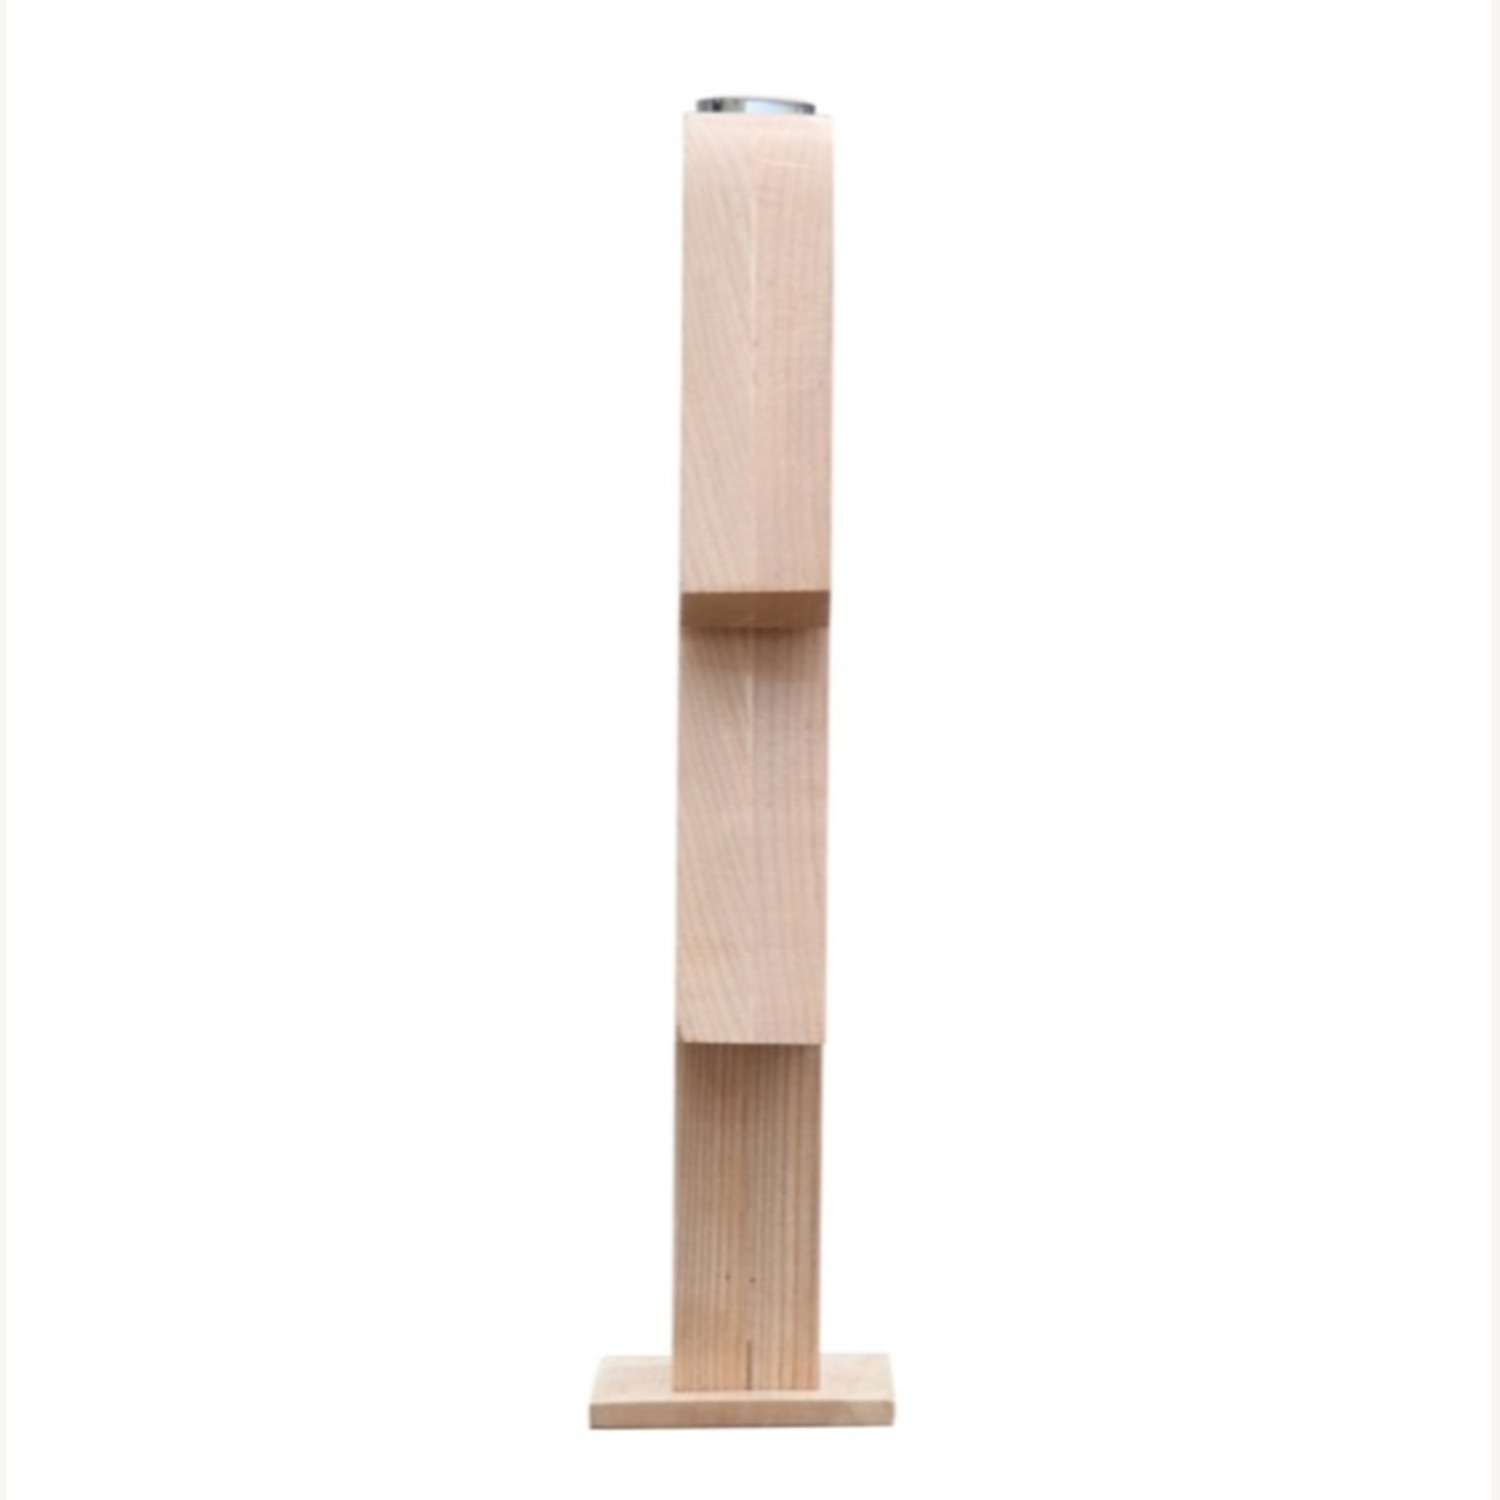 Table Lamp In Natural Wood W/ Female Person Design - image-6